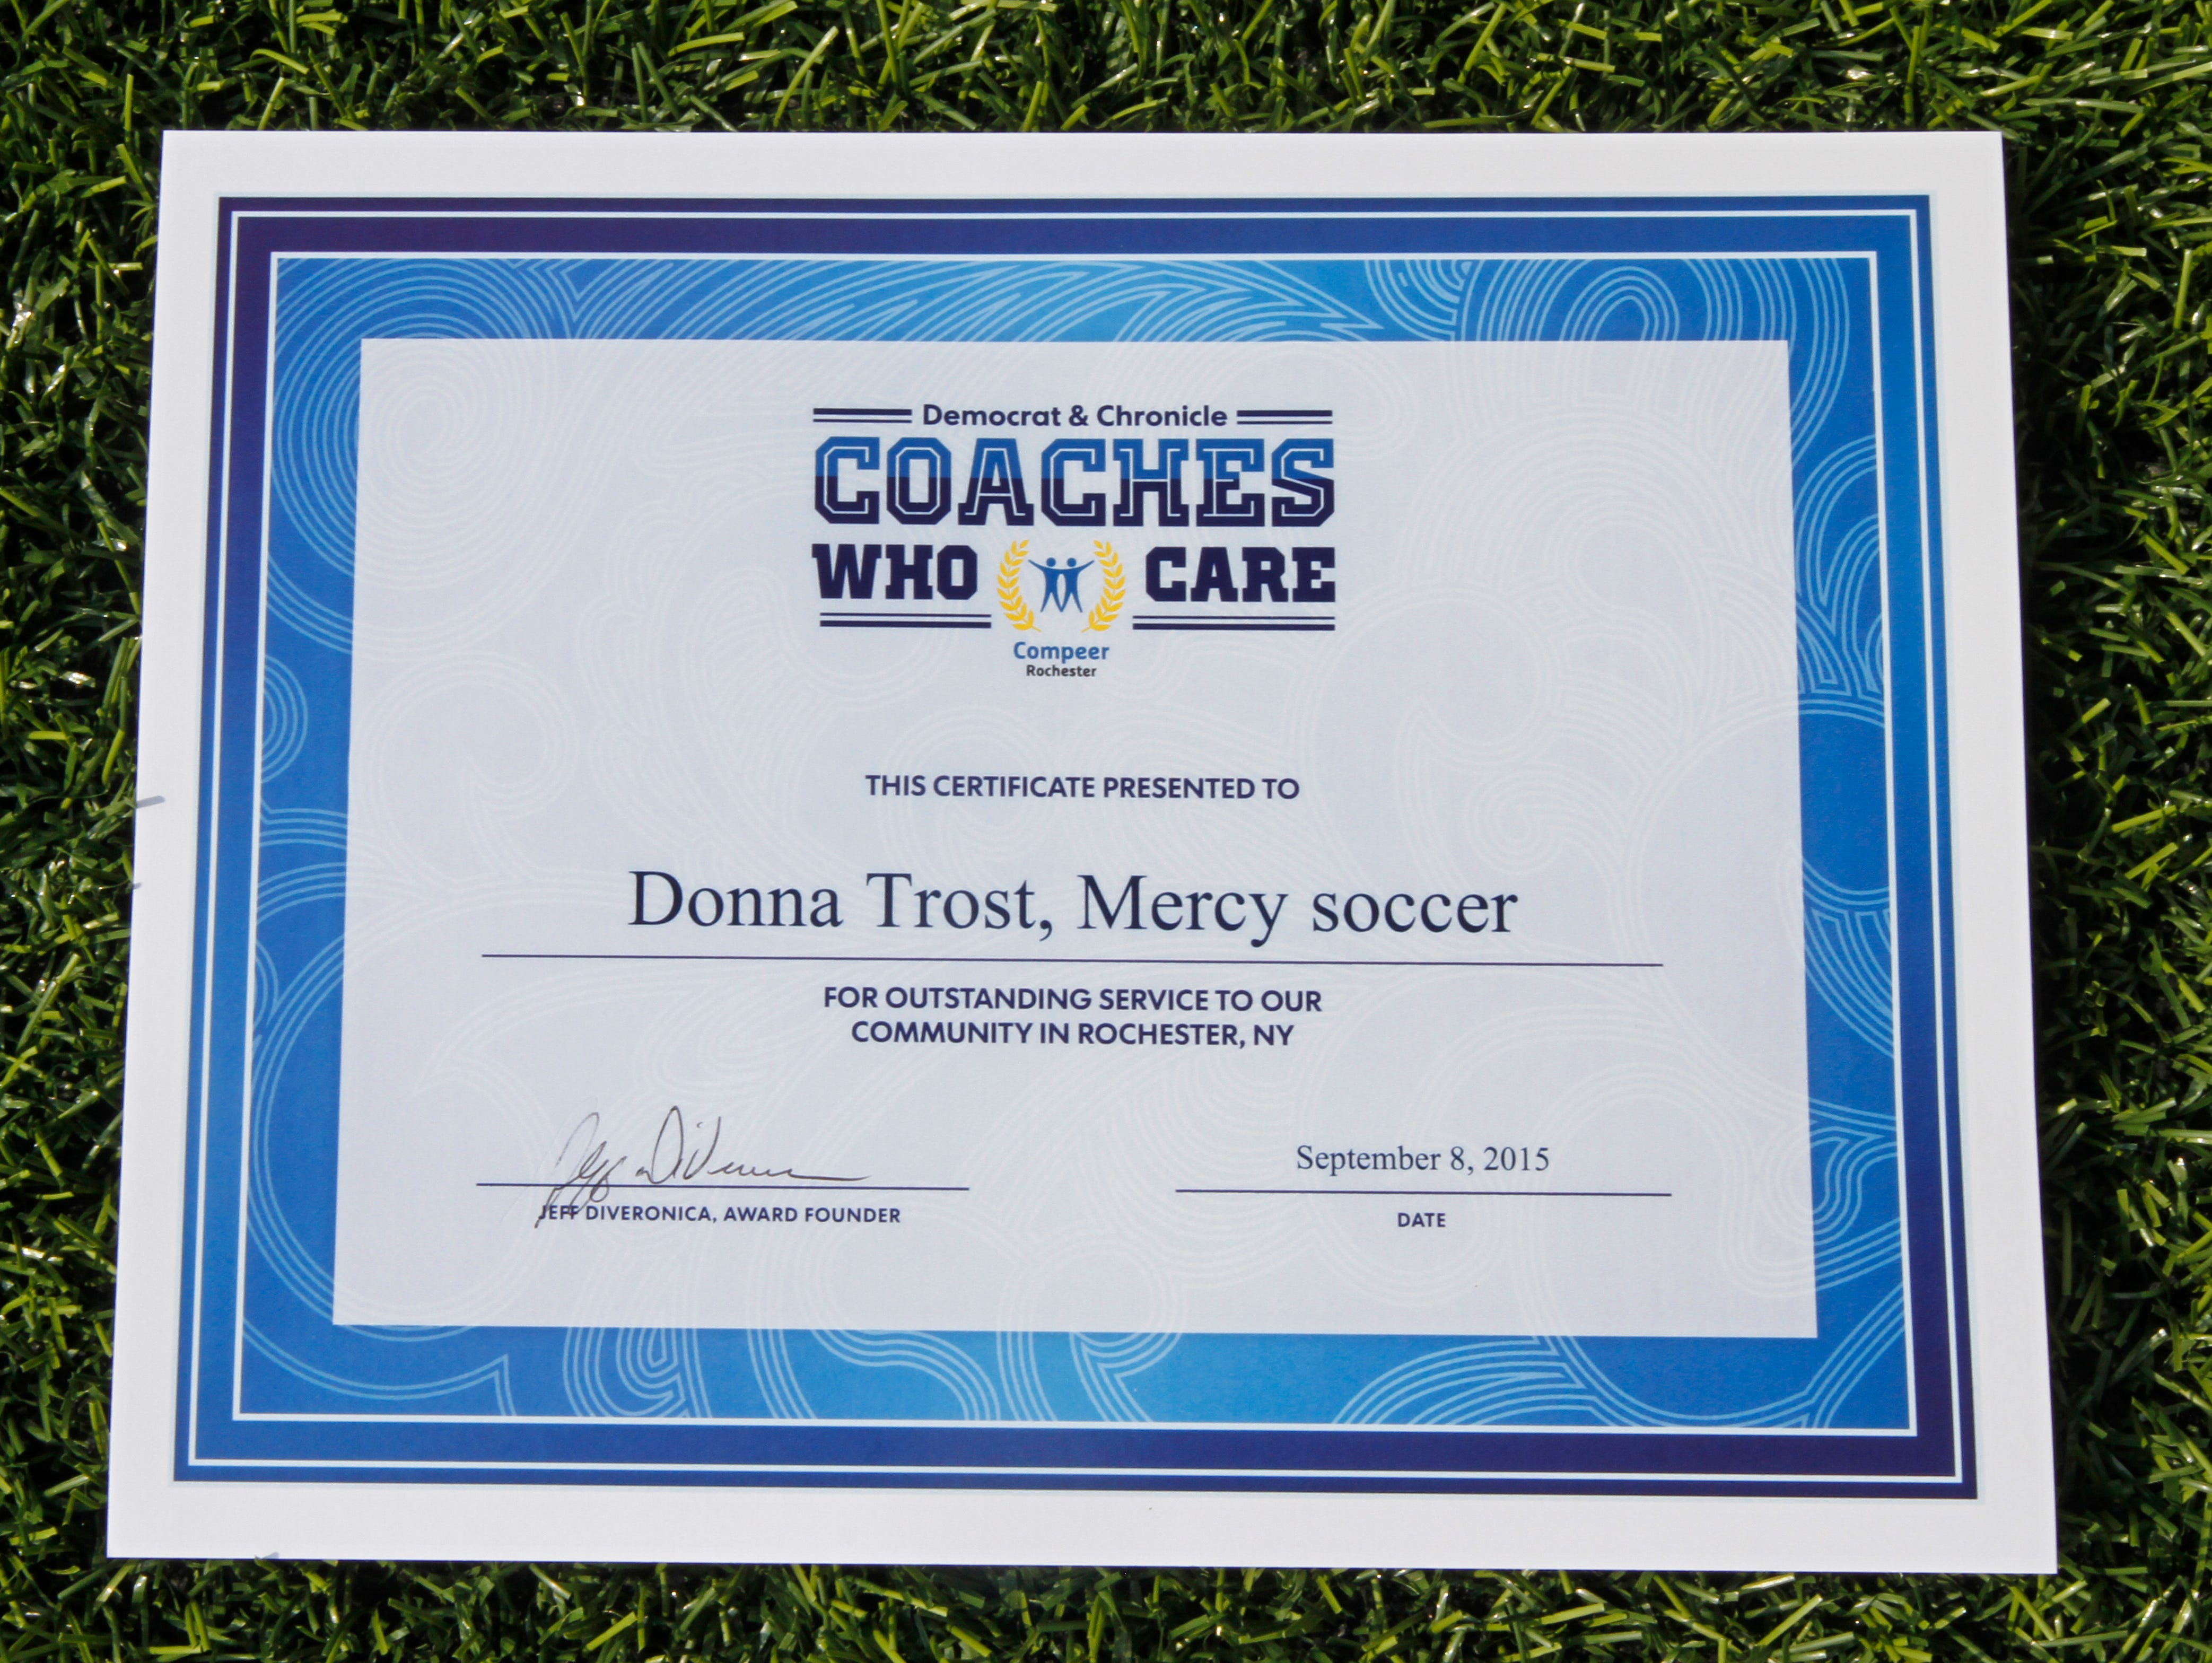 Donna Trost, head coach of Mercy varsity girls soccer, is the latest winner of the Democrat & Chronicle Coaches Who Care award, given to her Tuesday, Sept. 8, 2015 in Brighton.